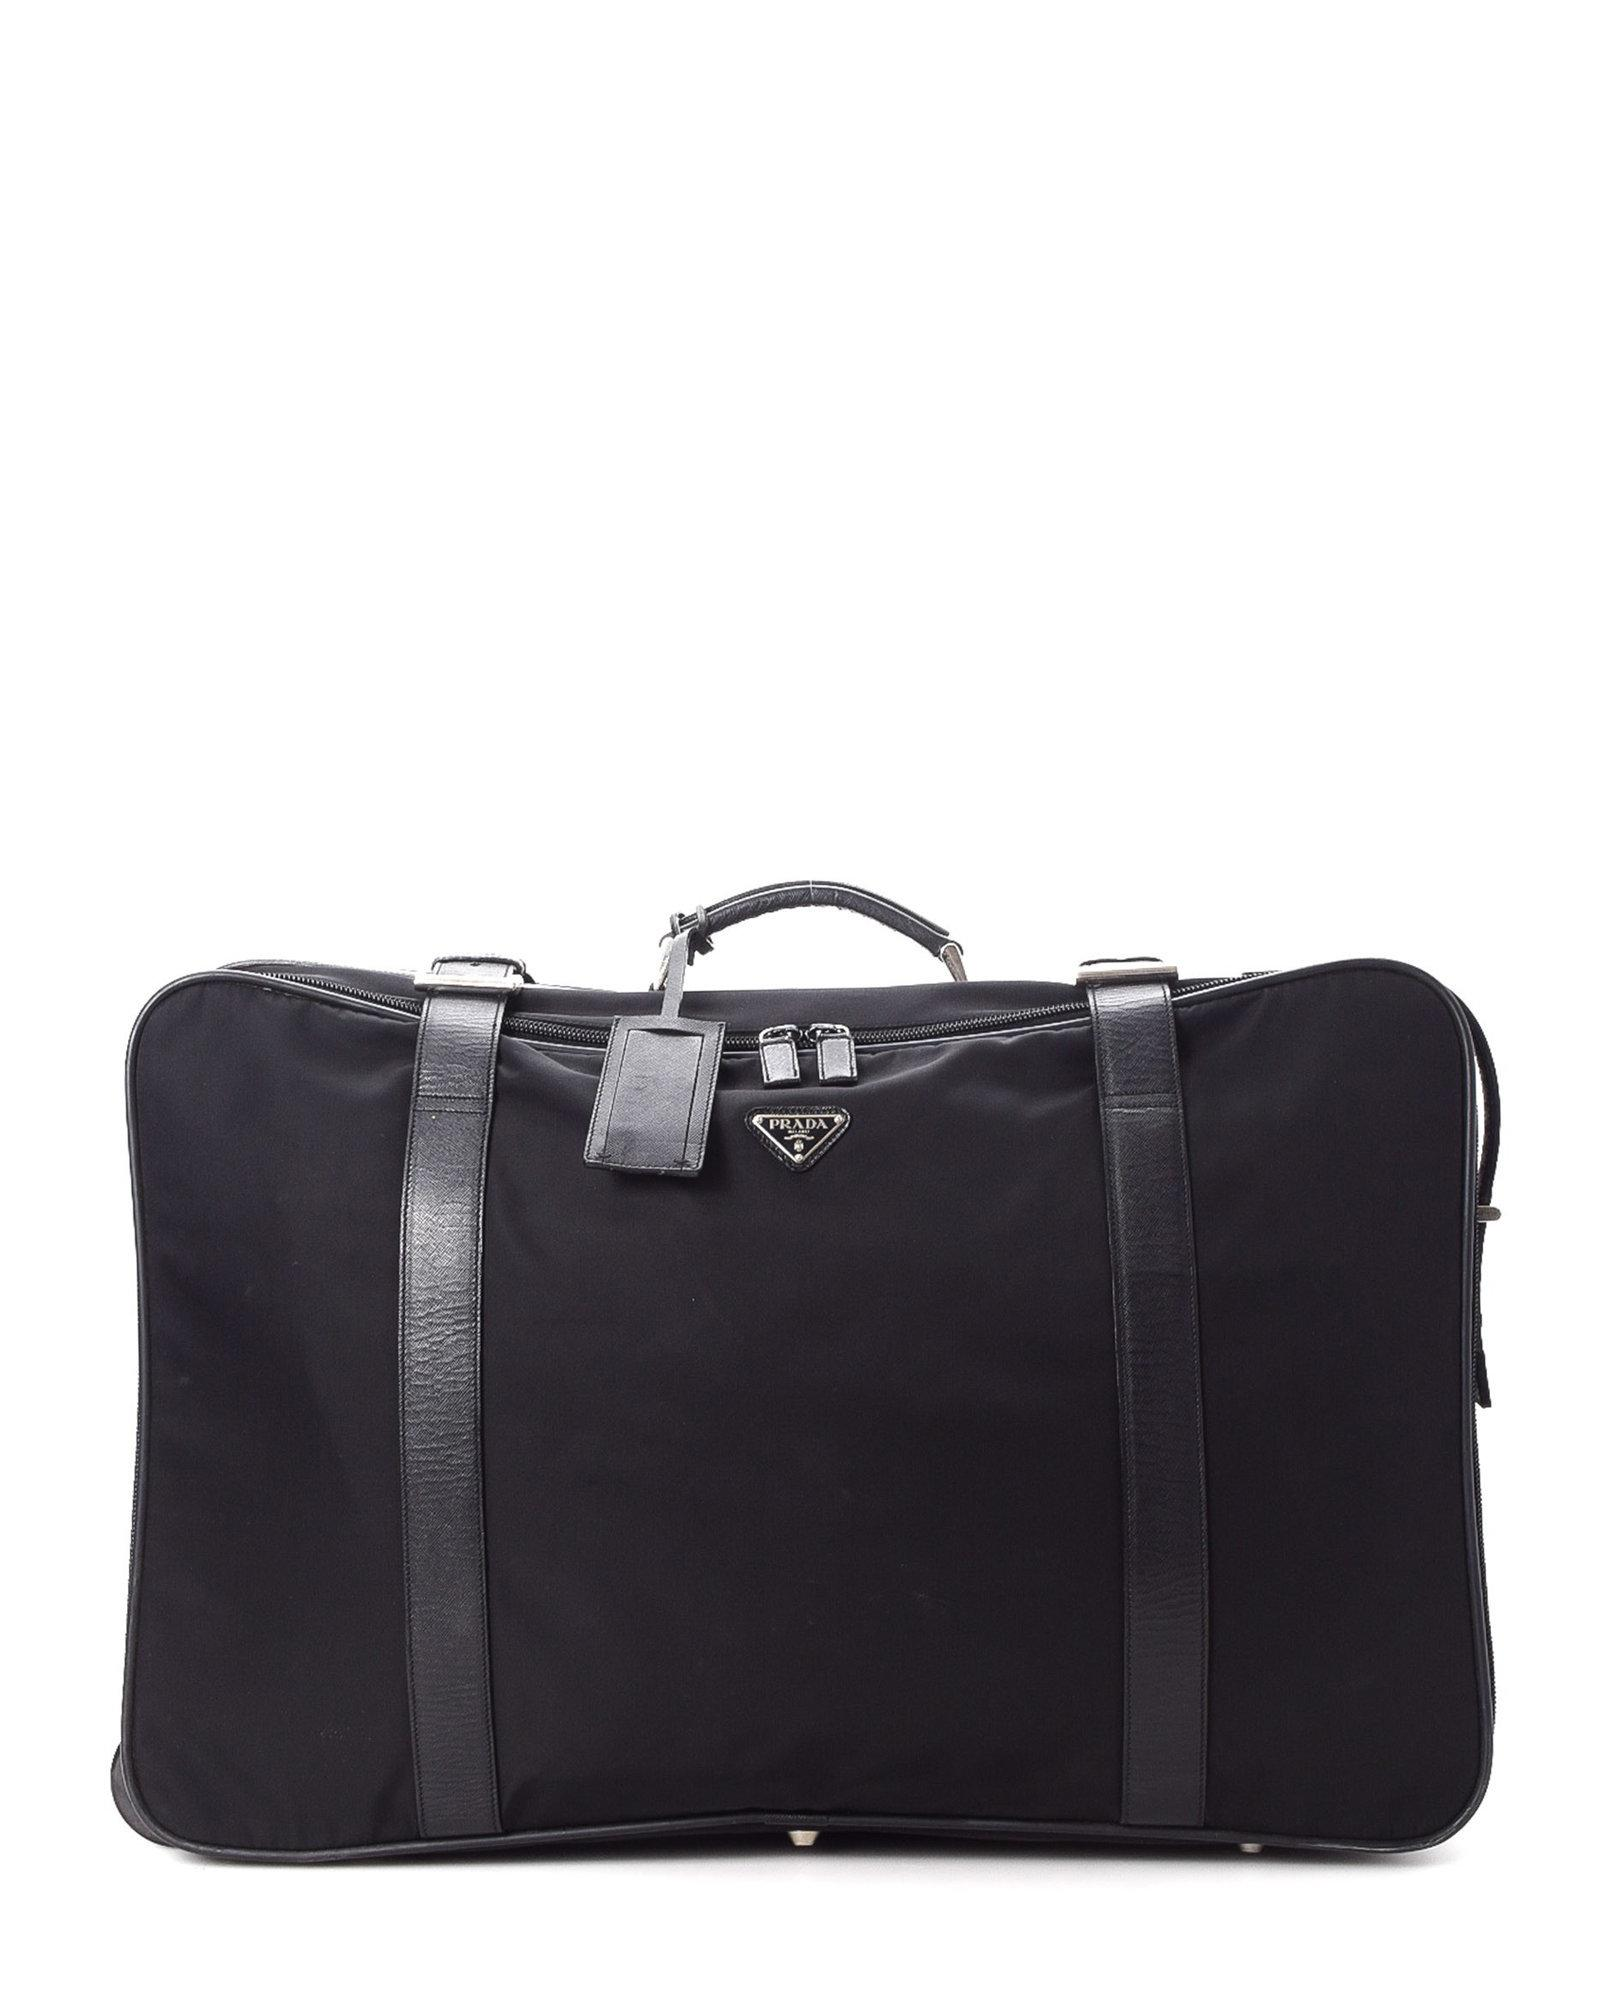 02614fe7c3aac3 ... best price prada black tessuto travel bag vintage lyst. view fullscreen  0520d 2e3aa